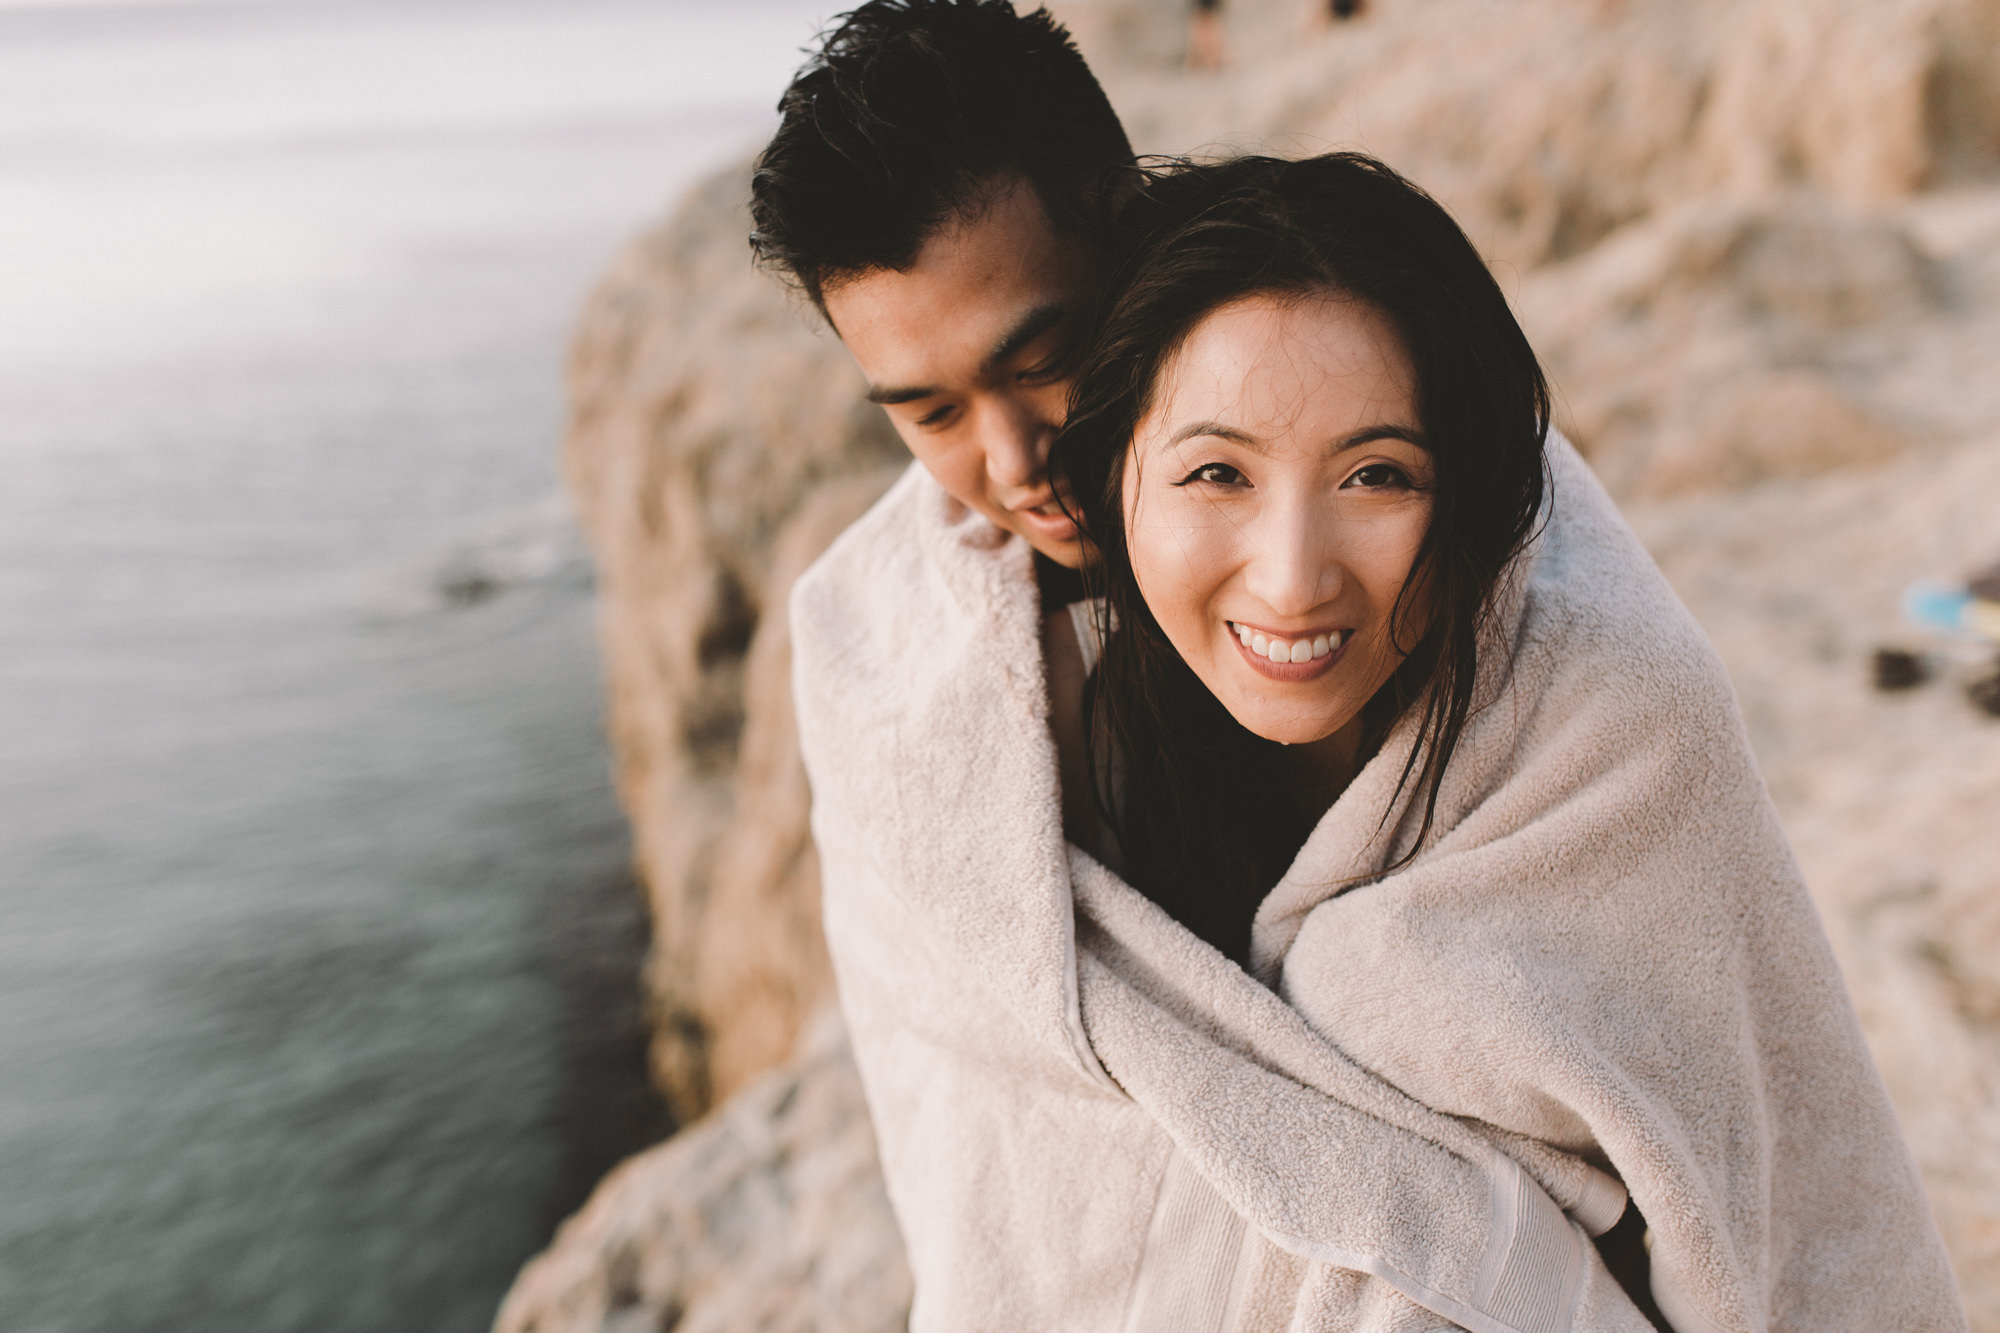 Mount Martha Natural Fun Candid Engagement Wedding Photography-64.jpg